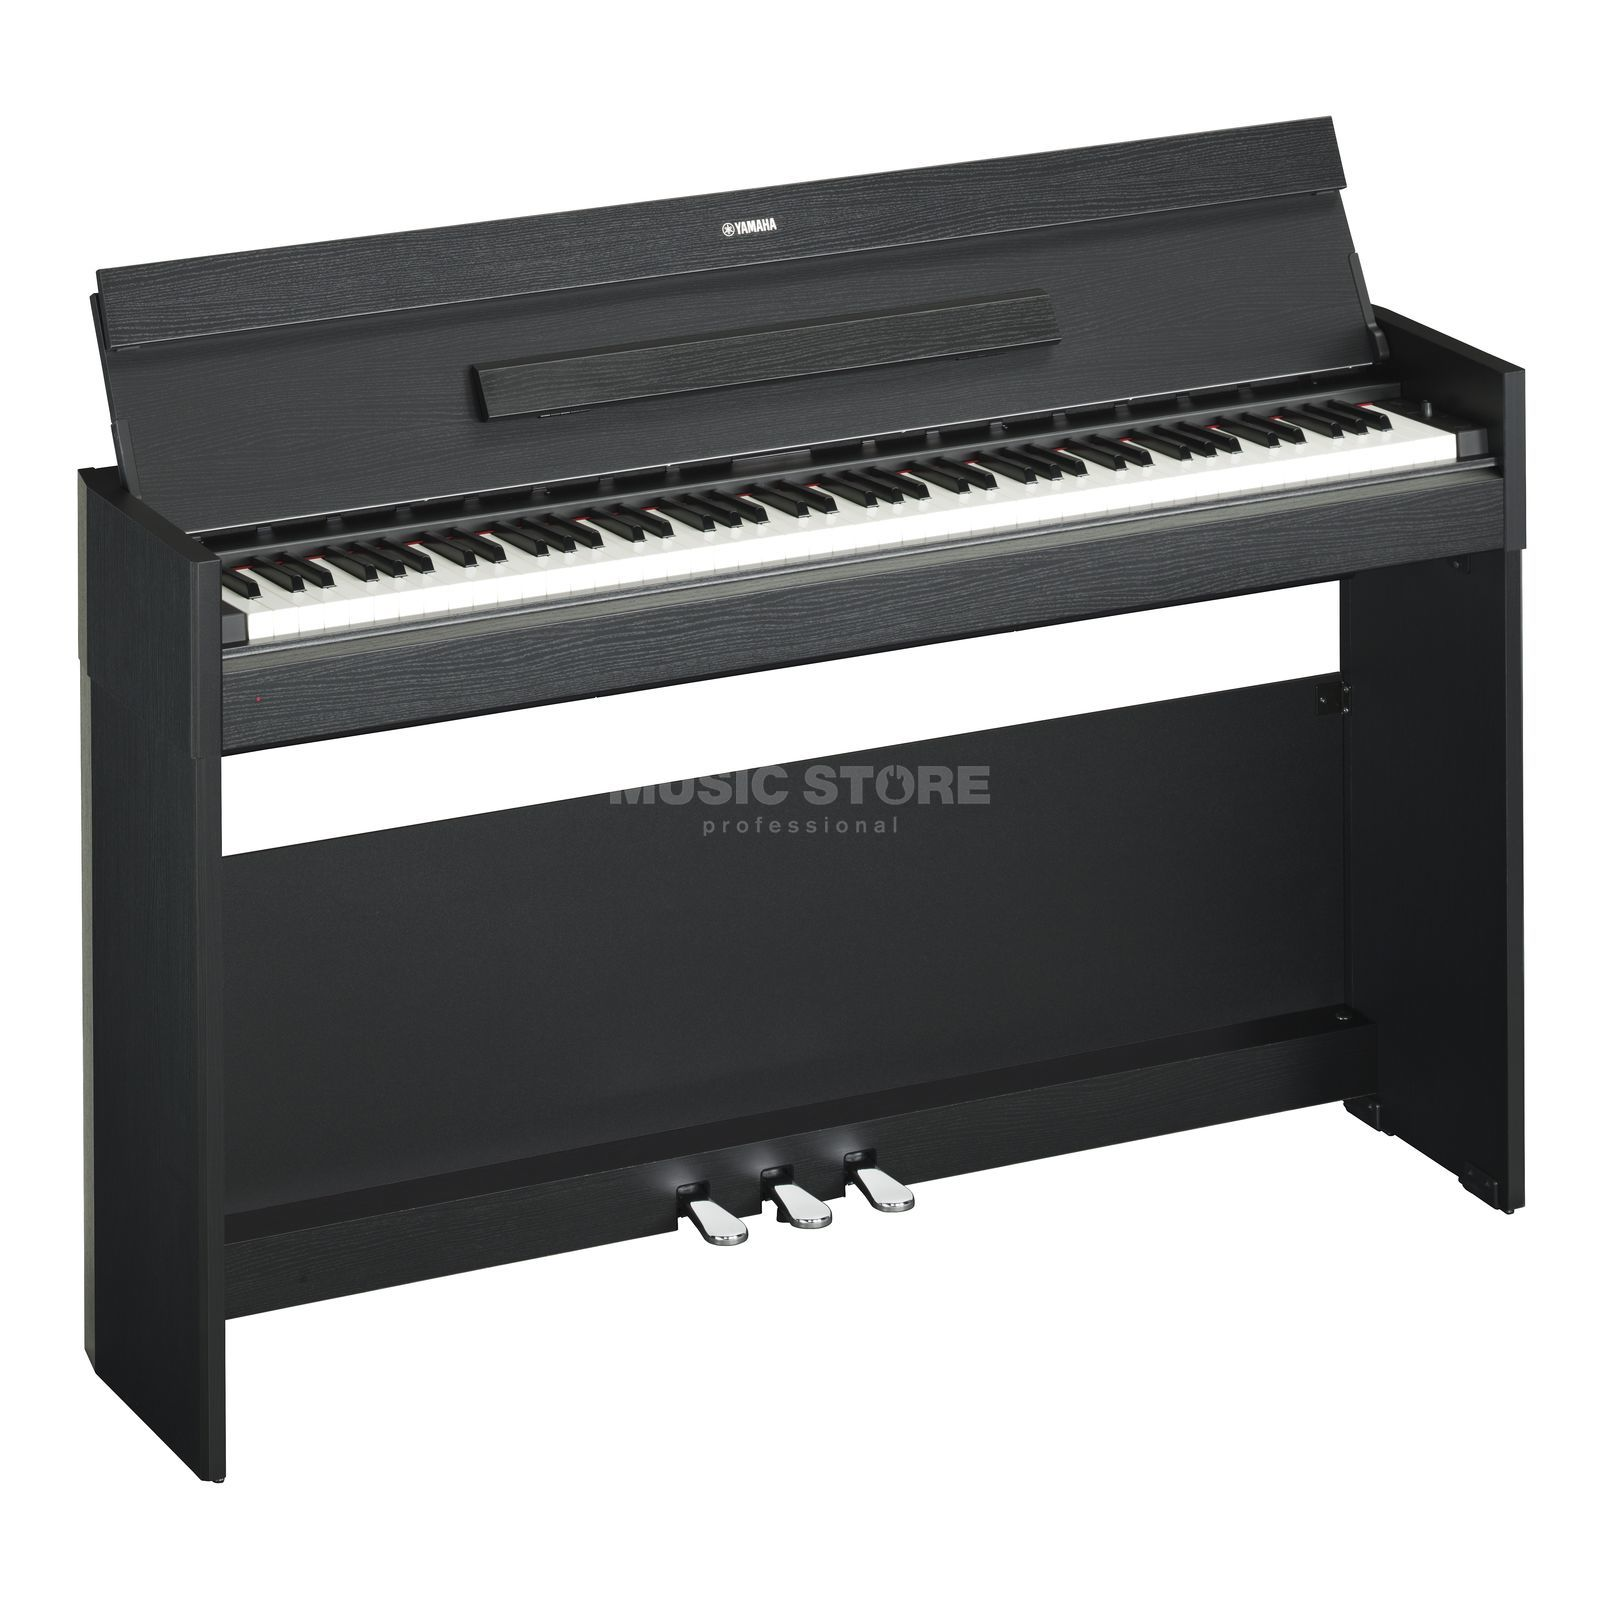 Yamaha YDP-S52 B Digital Piano Black Product Image